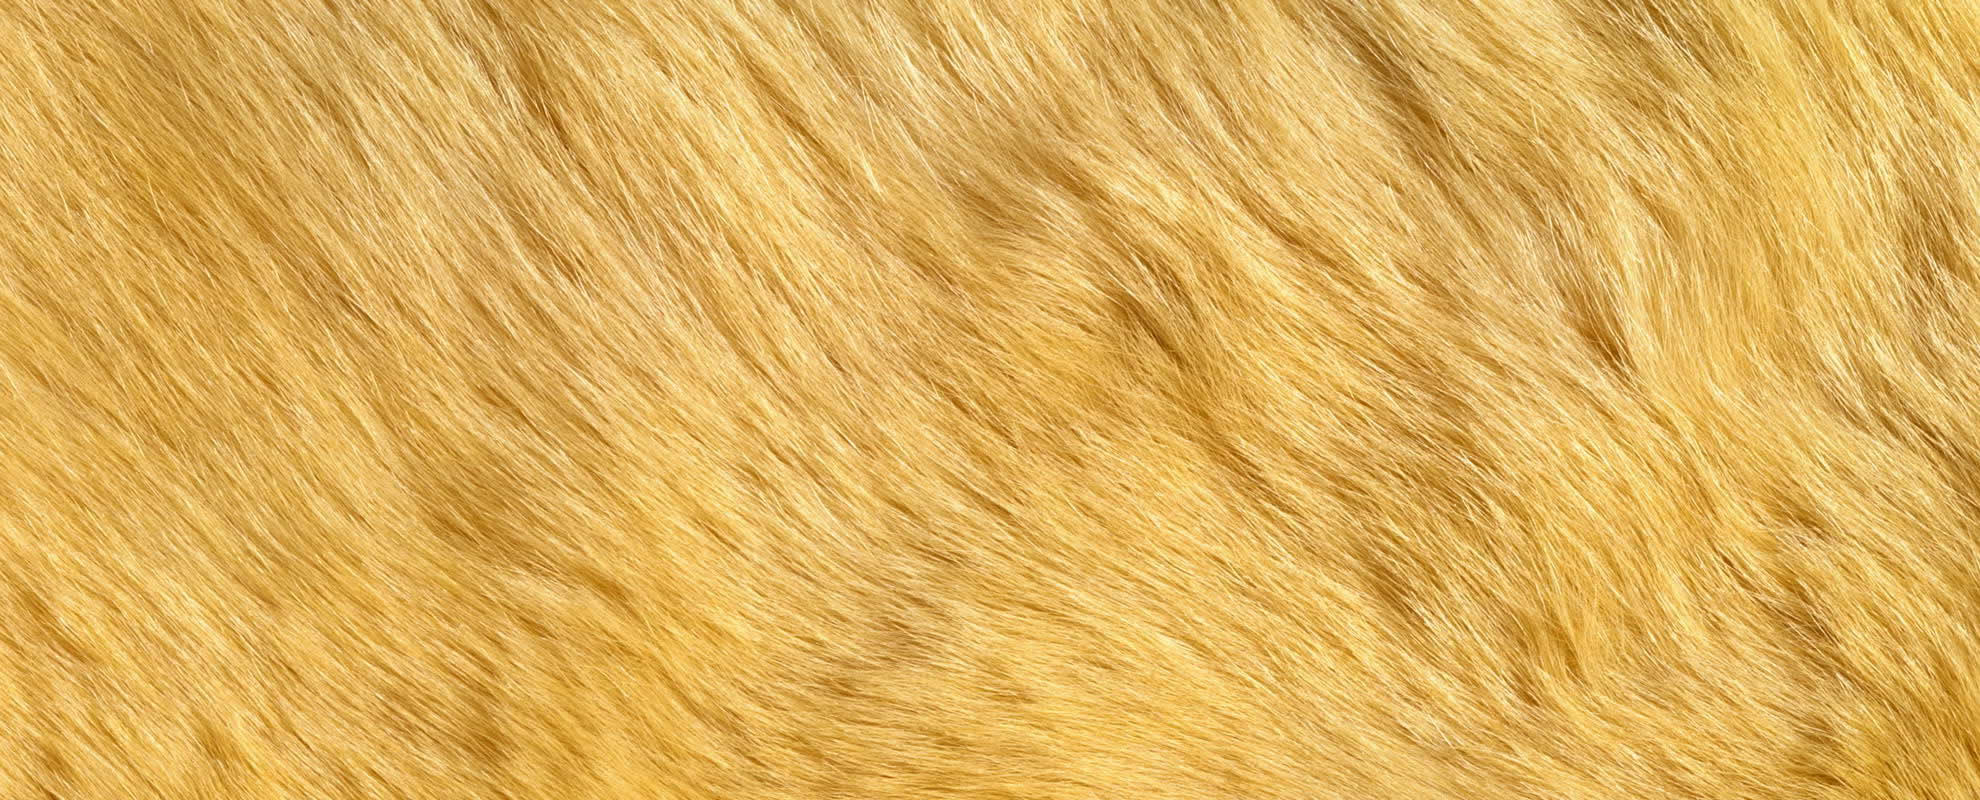 Animal-Fur-Skin-Background-20